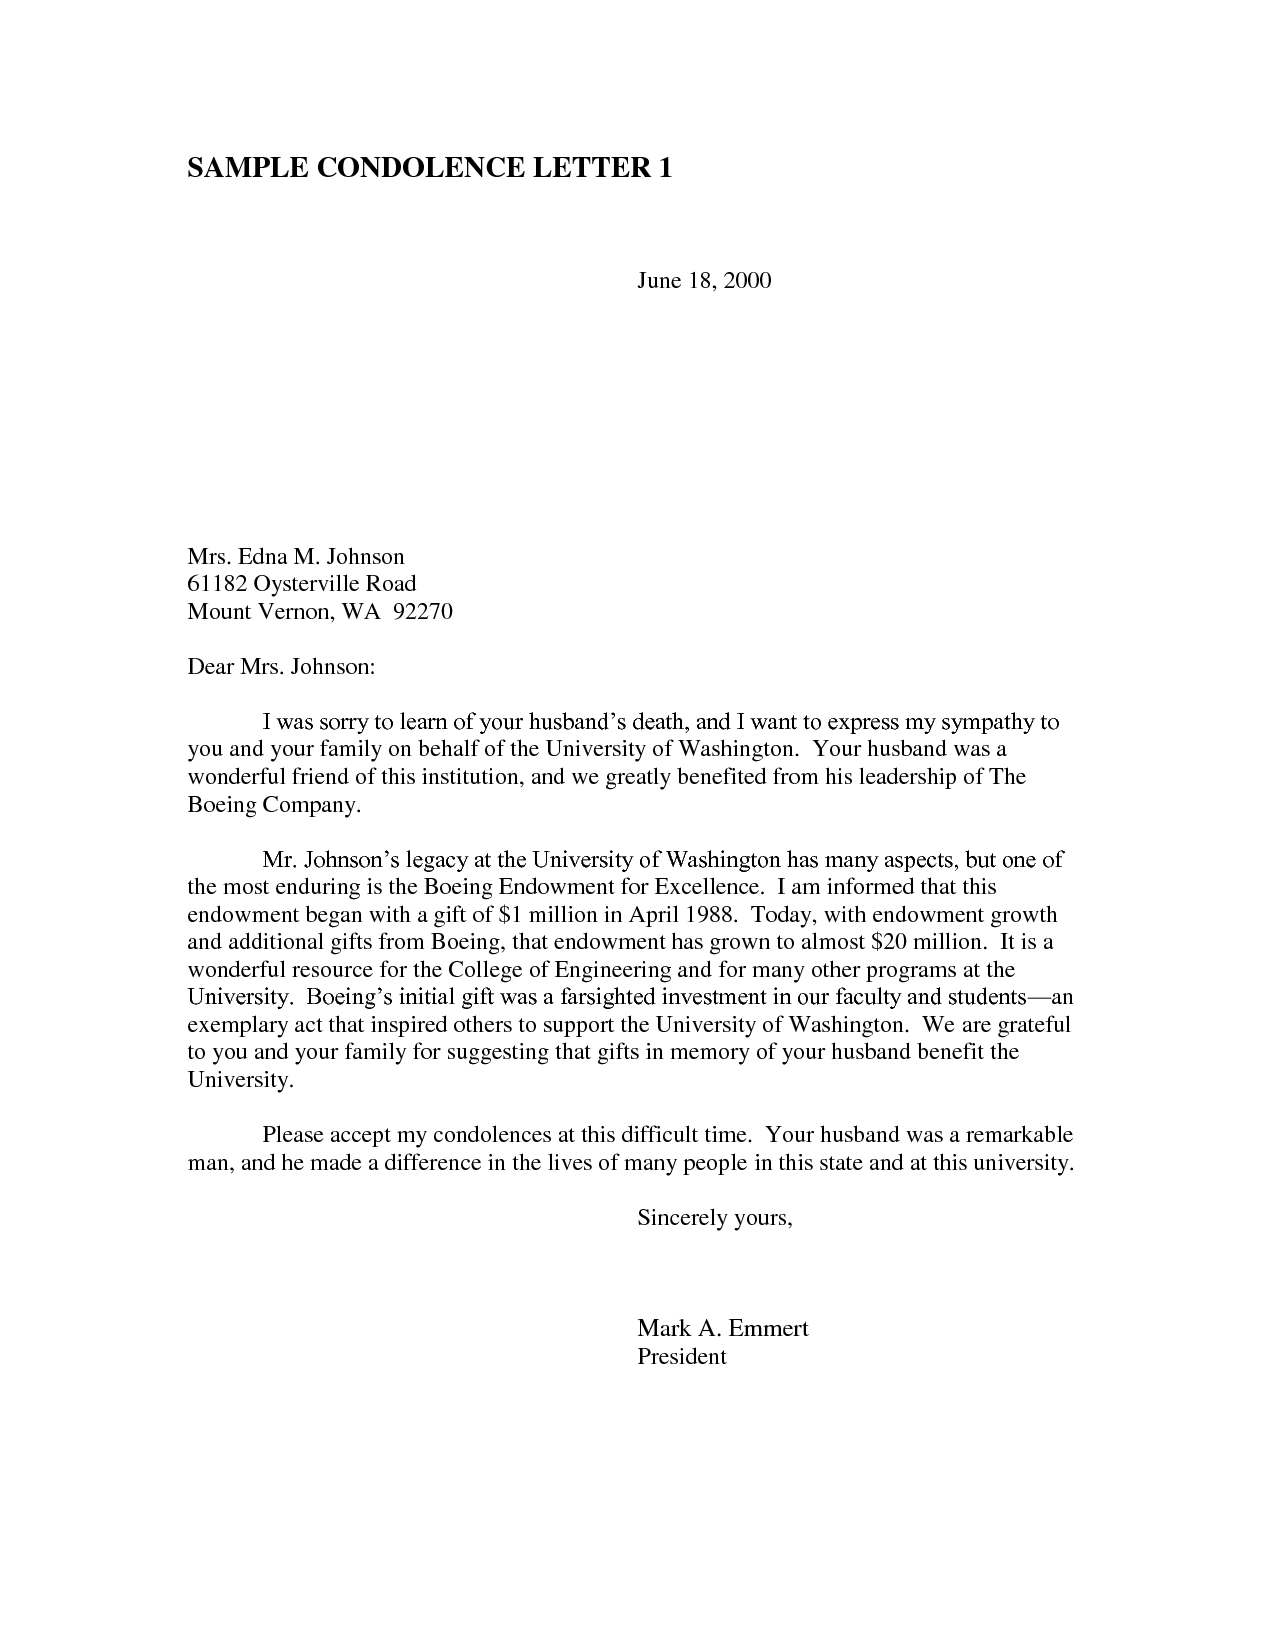 business condolence letter free sample business condolence letter is available here